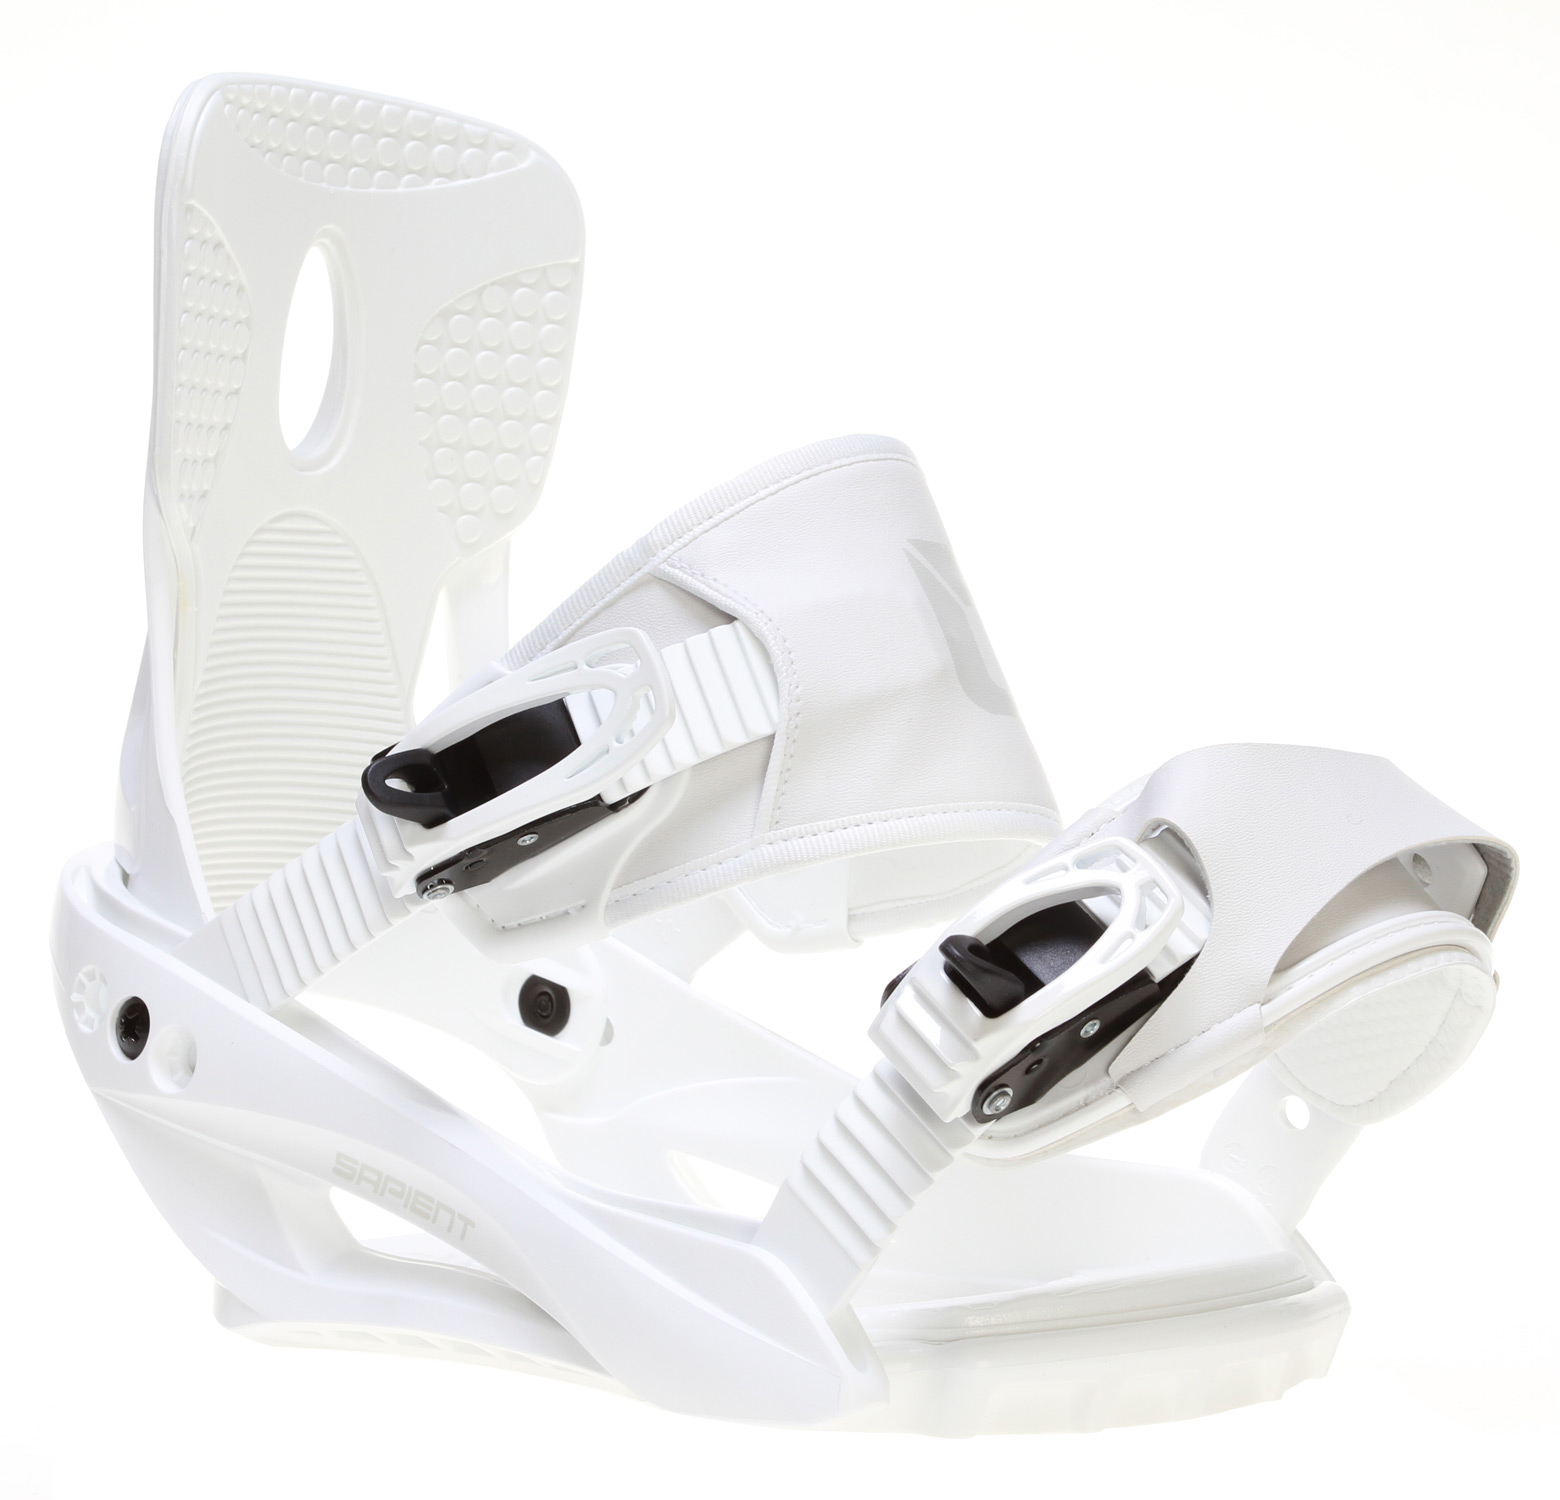 Snowboard These bindings were made for stomping and that is just what they will do! This strap contraption features a fiberglass reinforced plastic baseplate, lightweight cored highback and comfortable sewn straps. With a heavily padded footbed, metal ratchets and quick adjust hardware these pups are ready to shred the slopes but not your wallet. Finally, they only come in white so they look great on any board.Key Features of the Sapient Zeta Snowboard Bindings: Fiber reinforced nylon Cored highback Metal ratchets Sewn straps with quick adjust ankle - $59.95